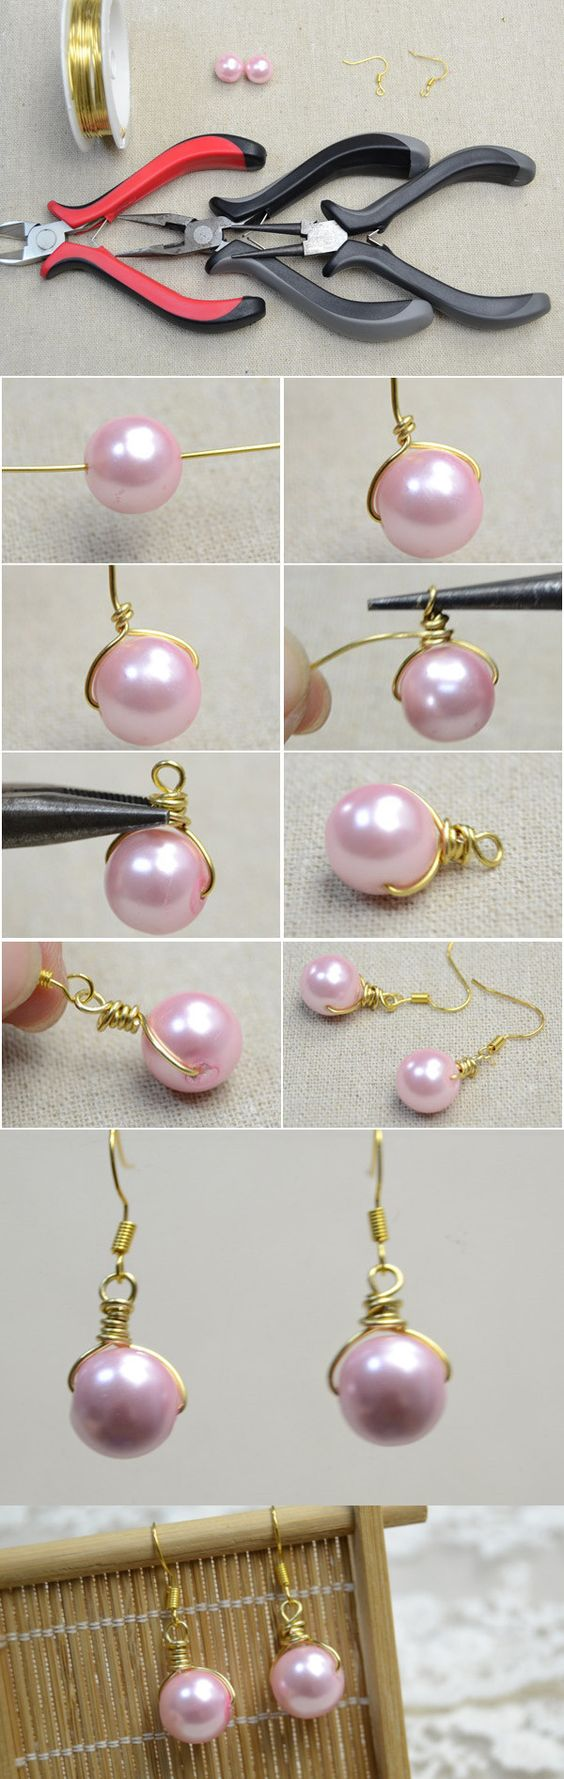 How to Make Pearl Drop Earrings with Pink Pearls and Golden Wires: